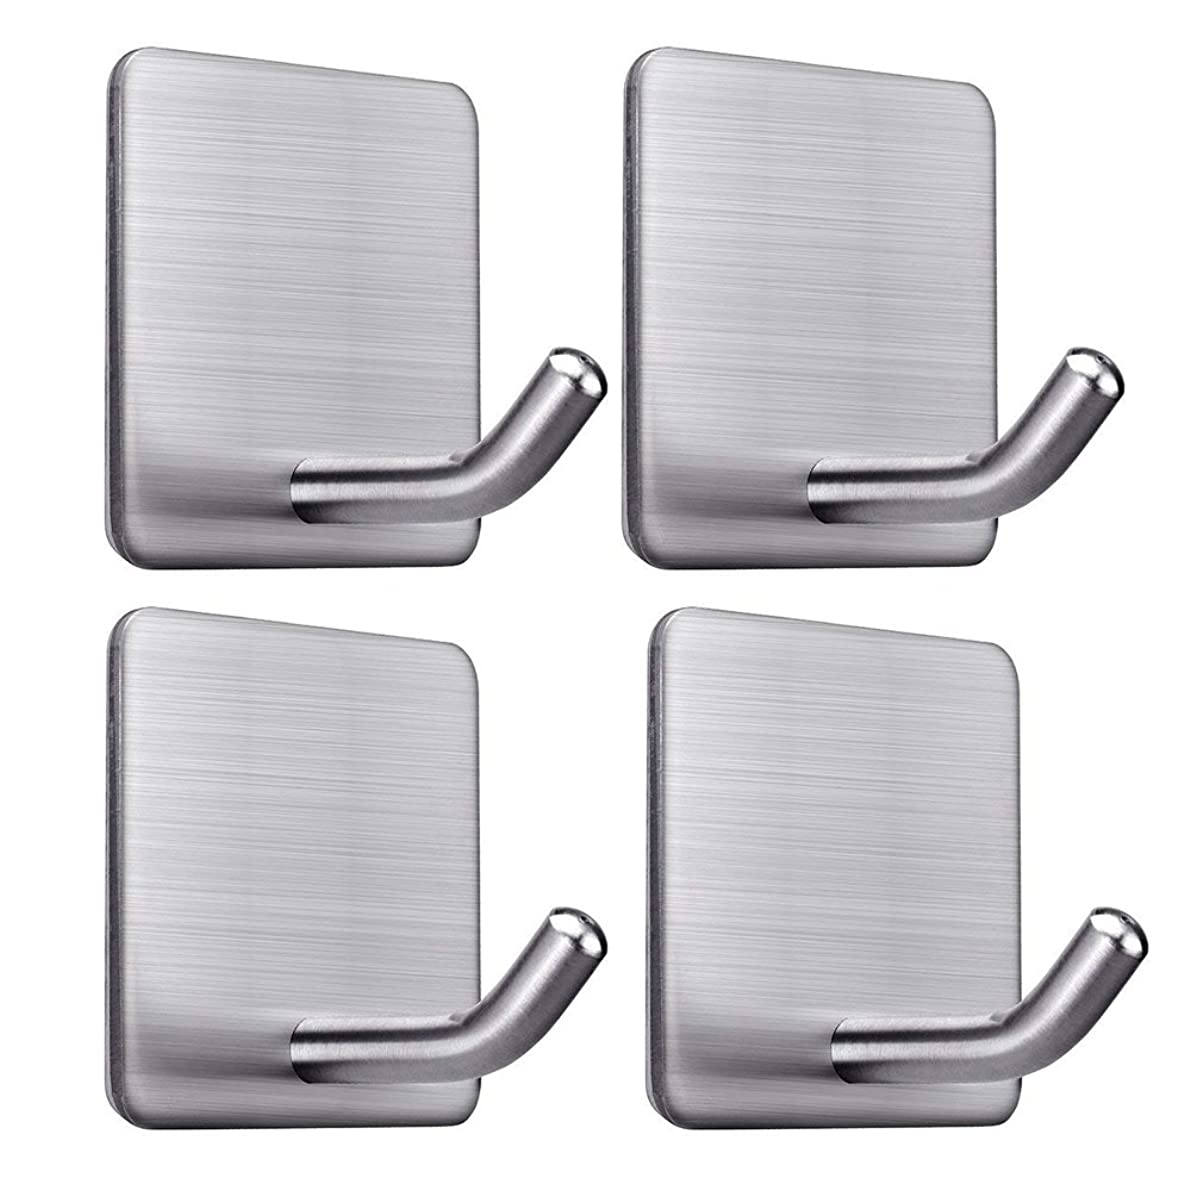 FOTYRIG Adhesive Hooks Wall Hooks Hanger Bathroom Office Hooks for Hanging Kitchen Bathroom Home Stick on Wall Stainless Steel-4 Packs